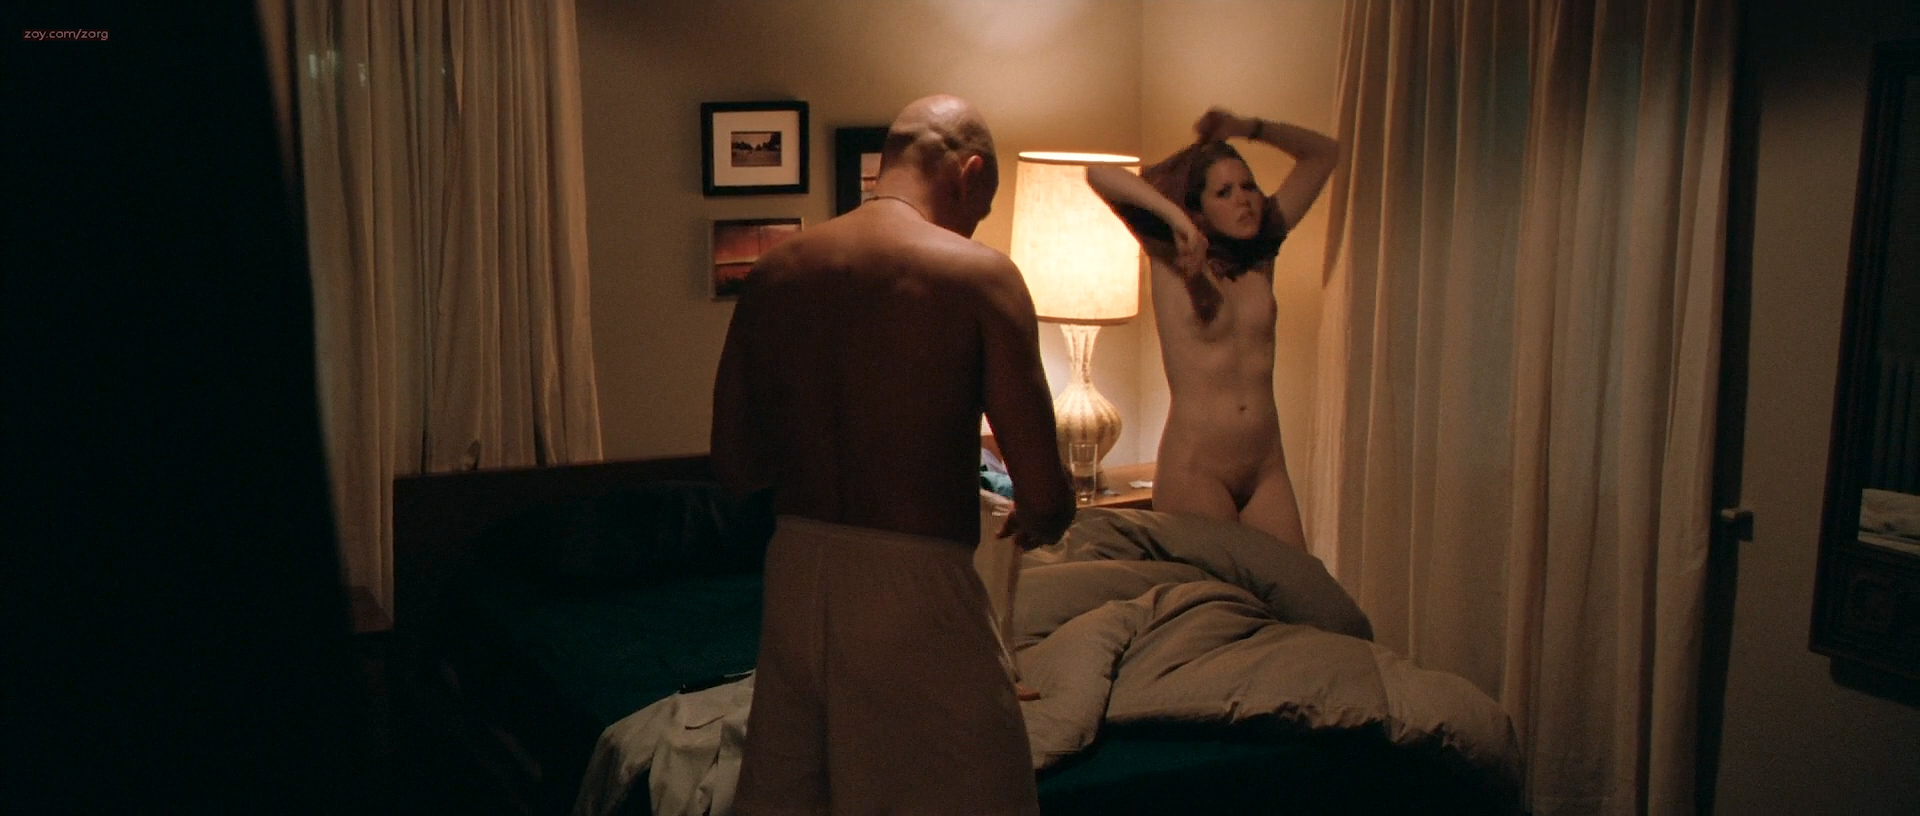 Jena Malone nude butt, boobs and Lisa Joyce nude full frontal - The Messenger (2009) HD 1080p (10)